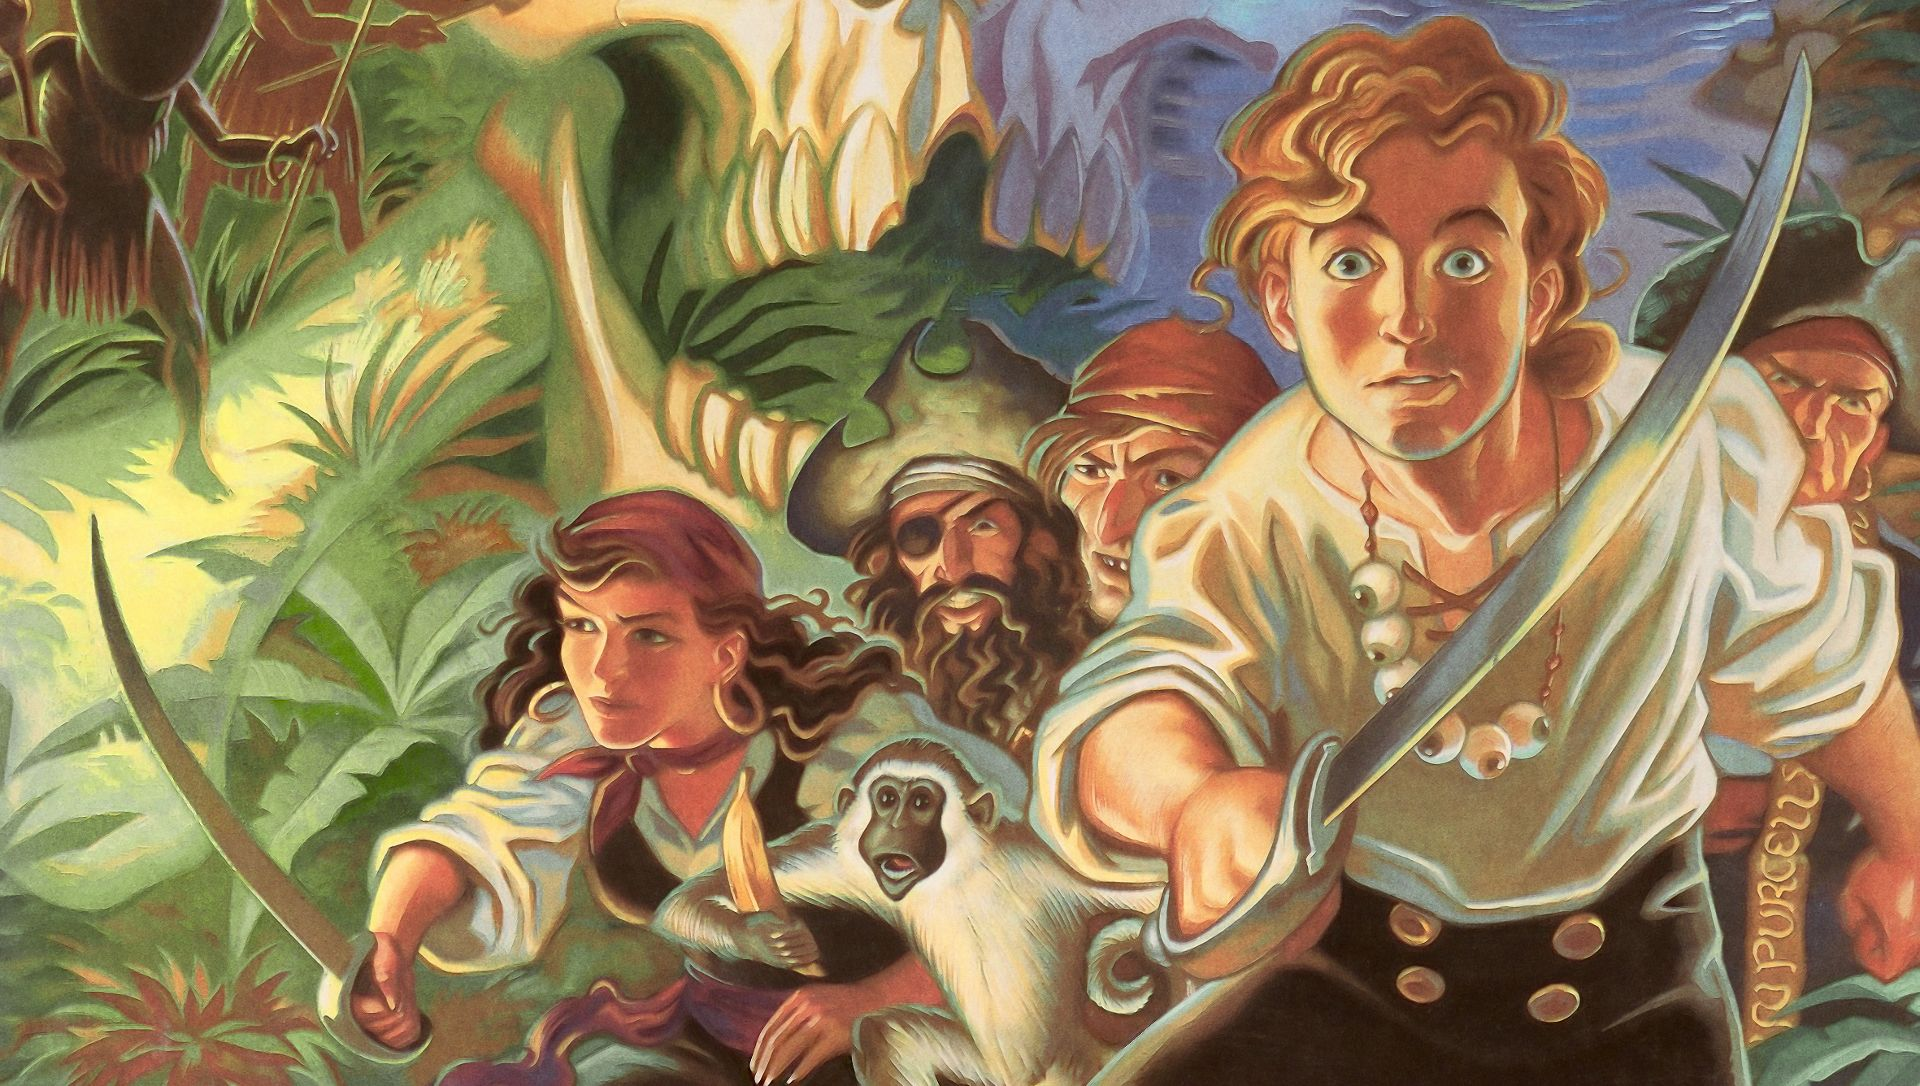 The Secret of Monkey Island - 25 years immature this month